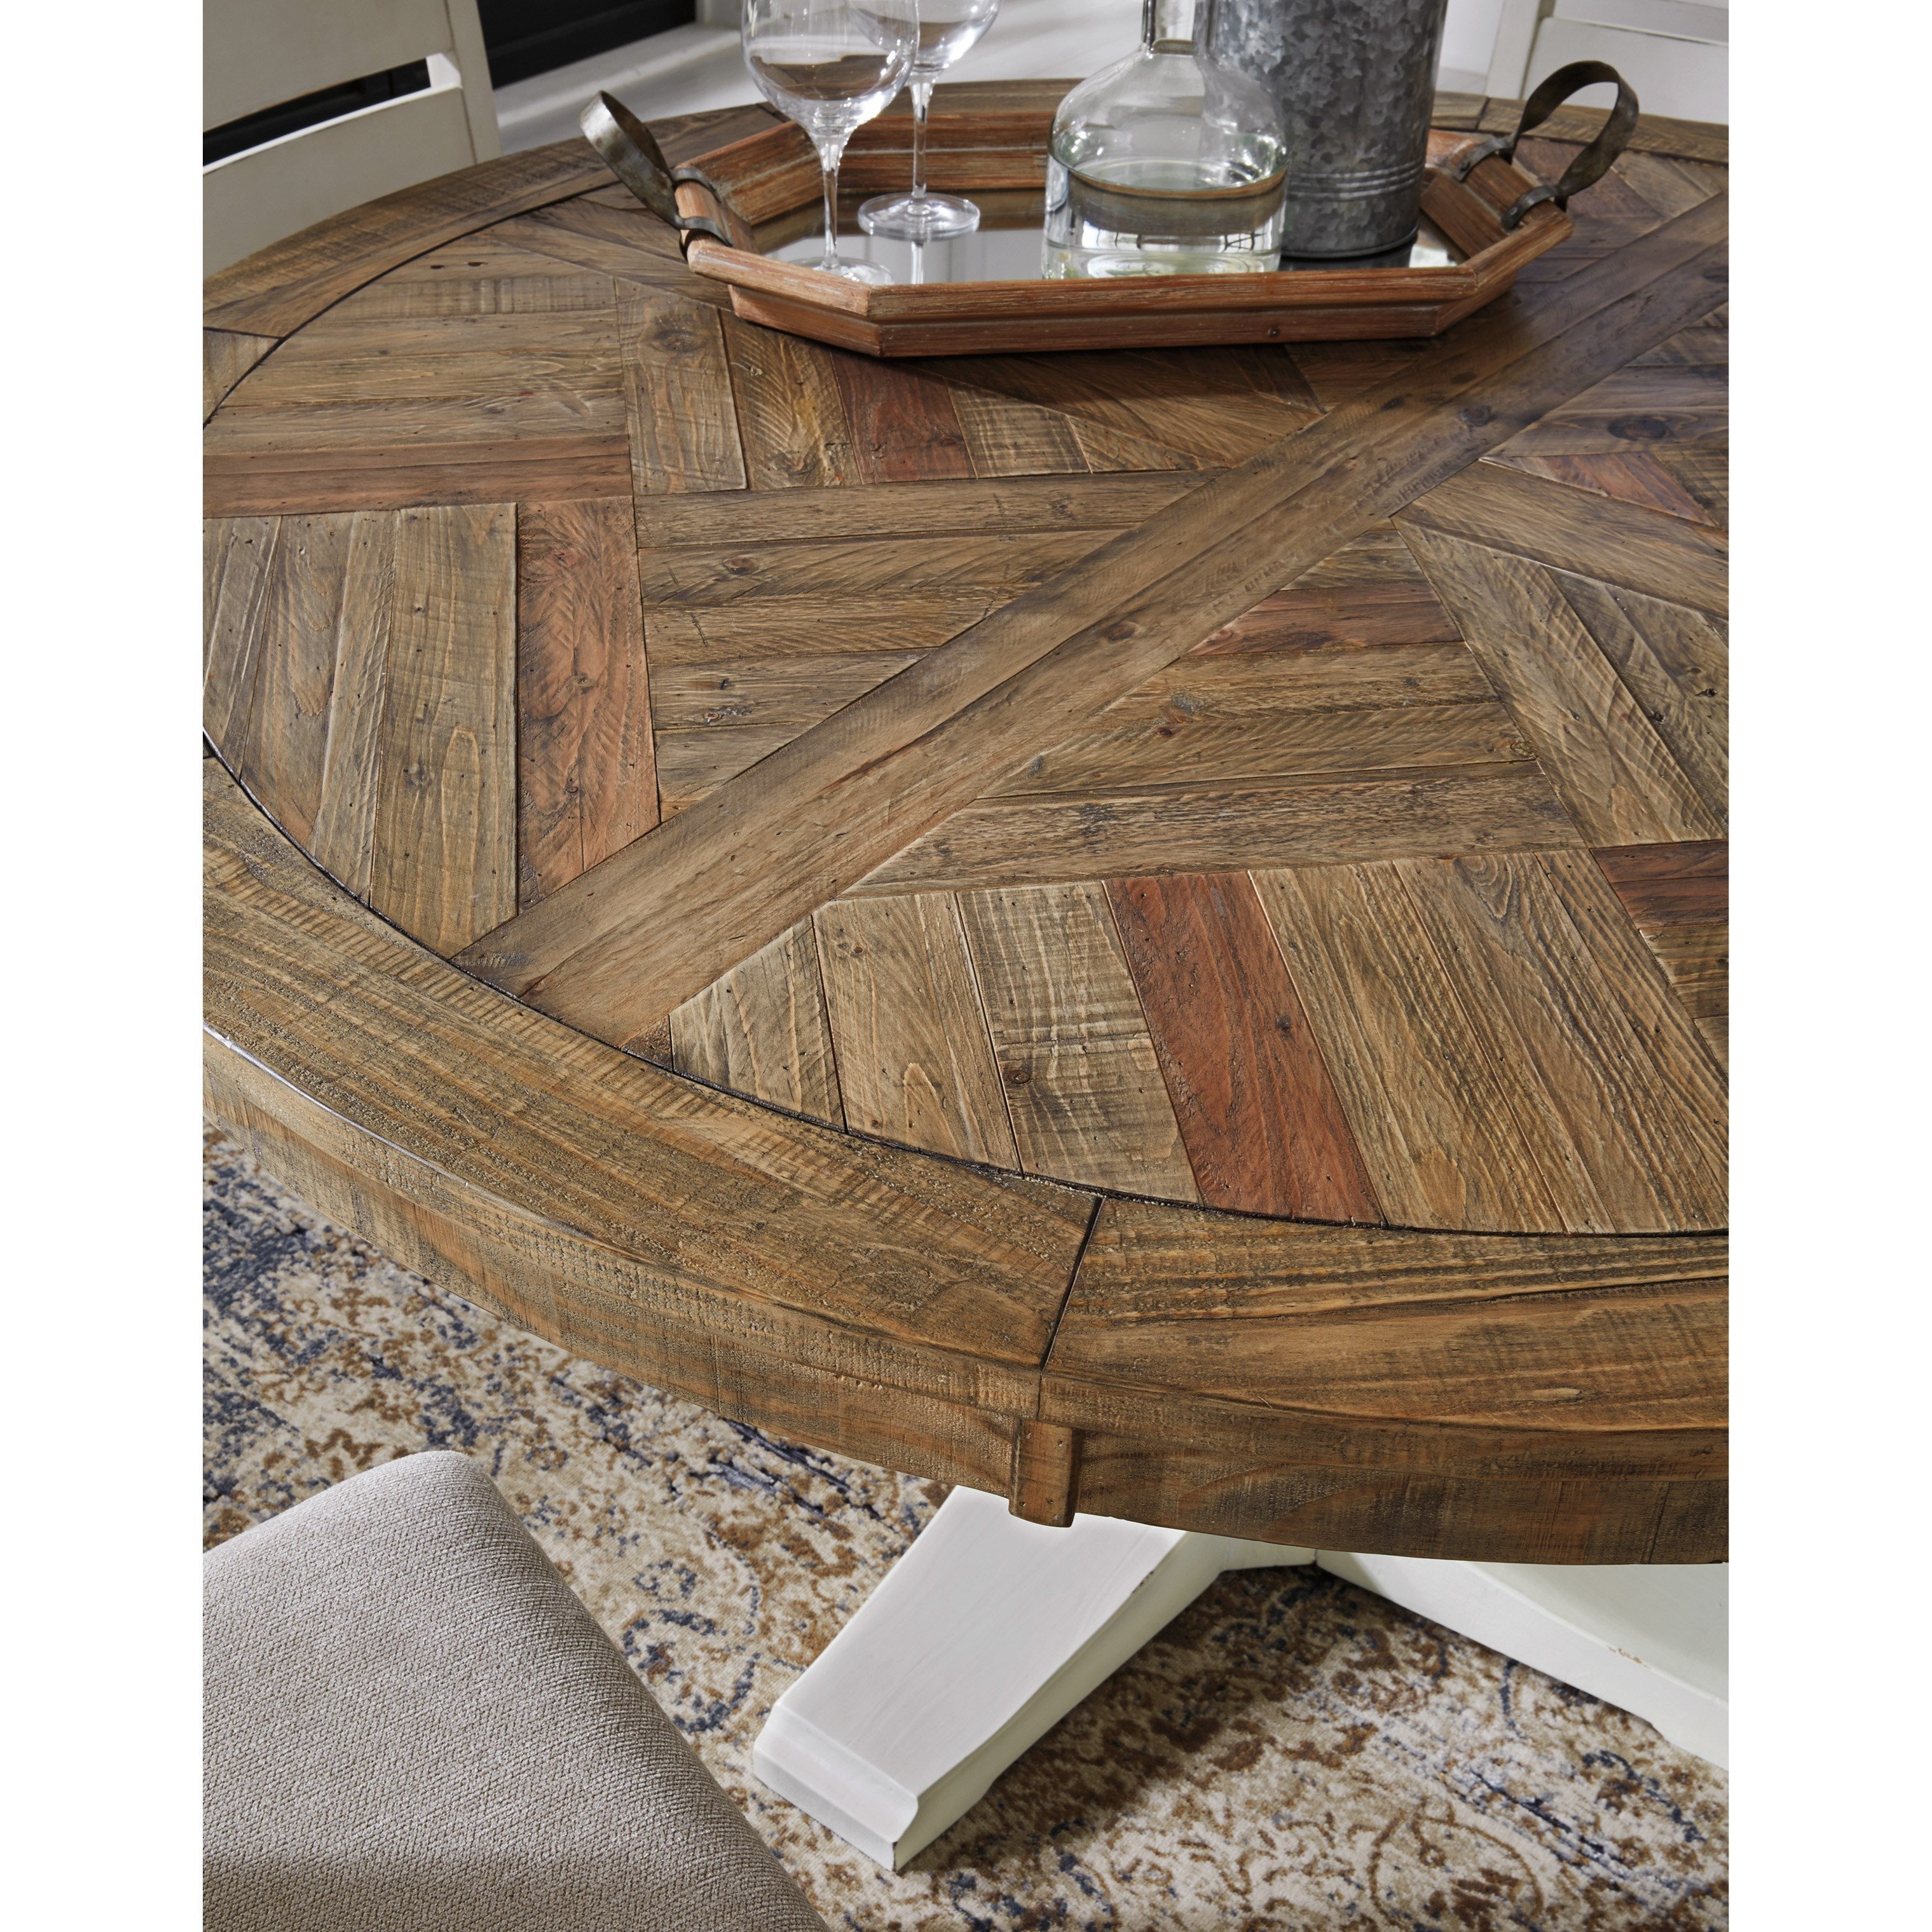 Grindleburg Dining Room Table Round: Benchcraft Grindleburg Round Dining Room Pedestal Table